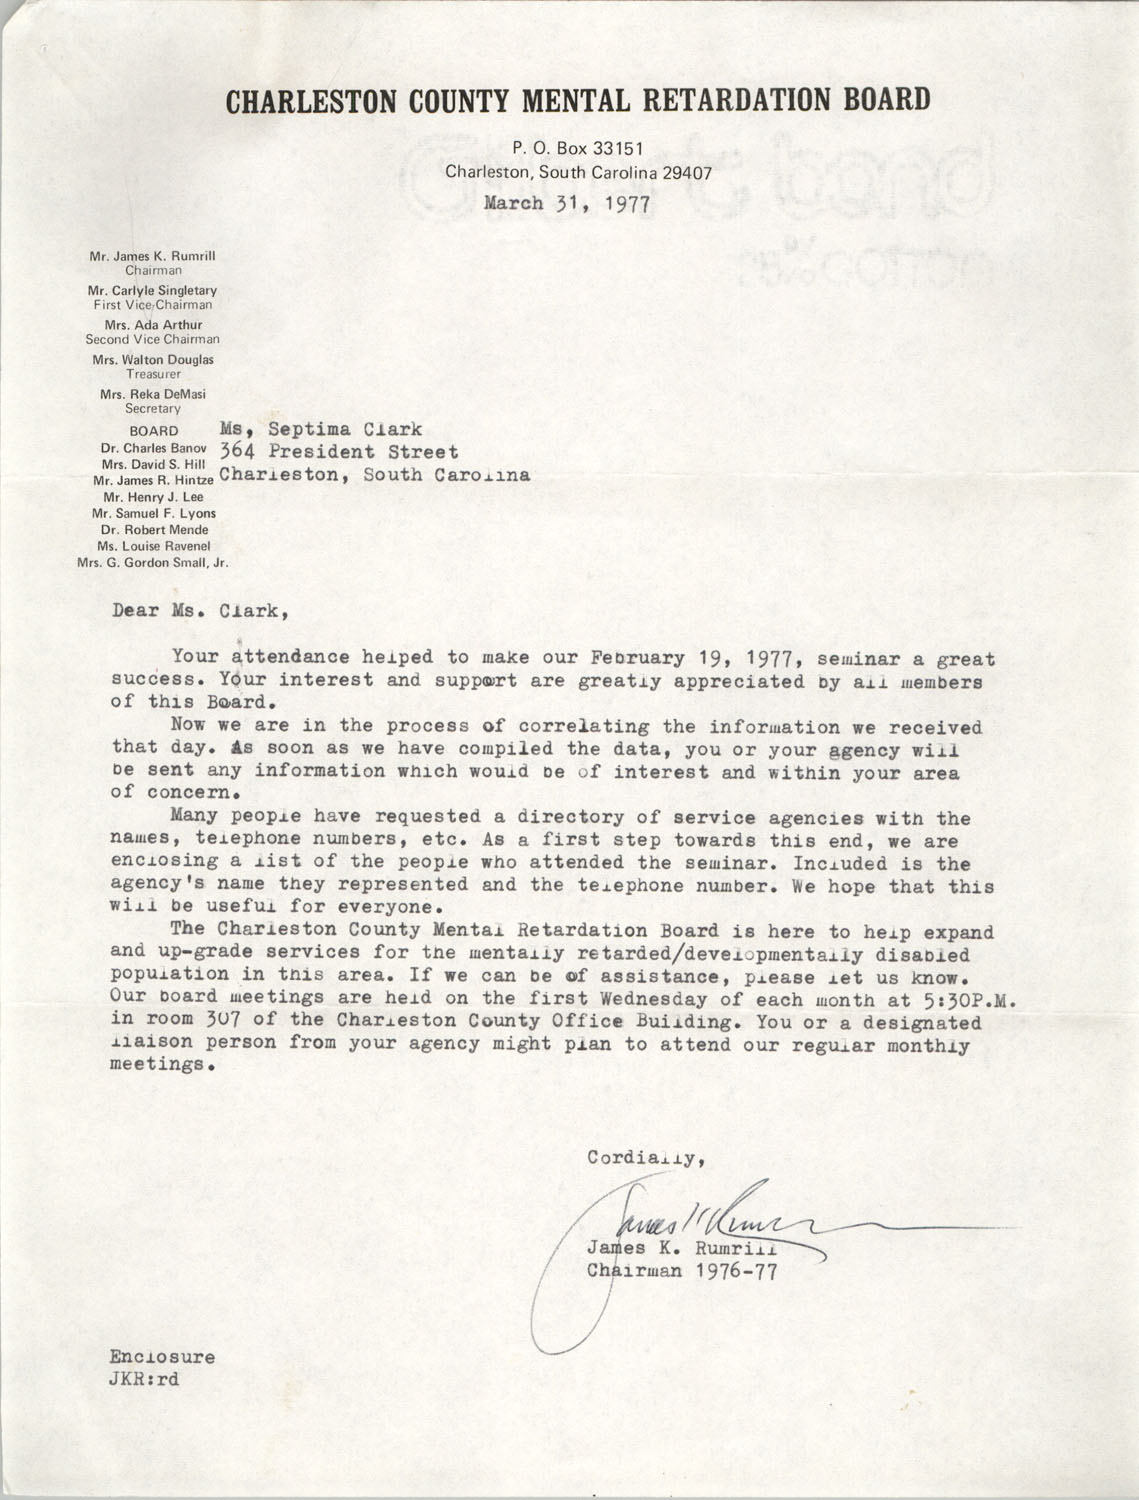 Letter from James K. Rumrill to Septima P. Clark; Charleston County Mental Retardation Board Directory, March 31, 1977